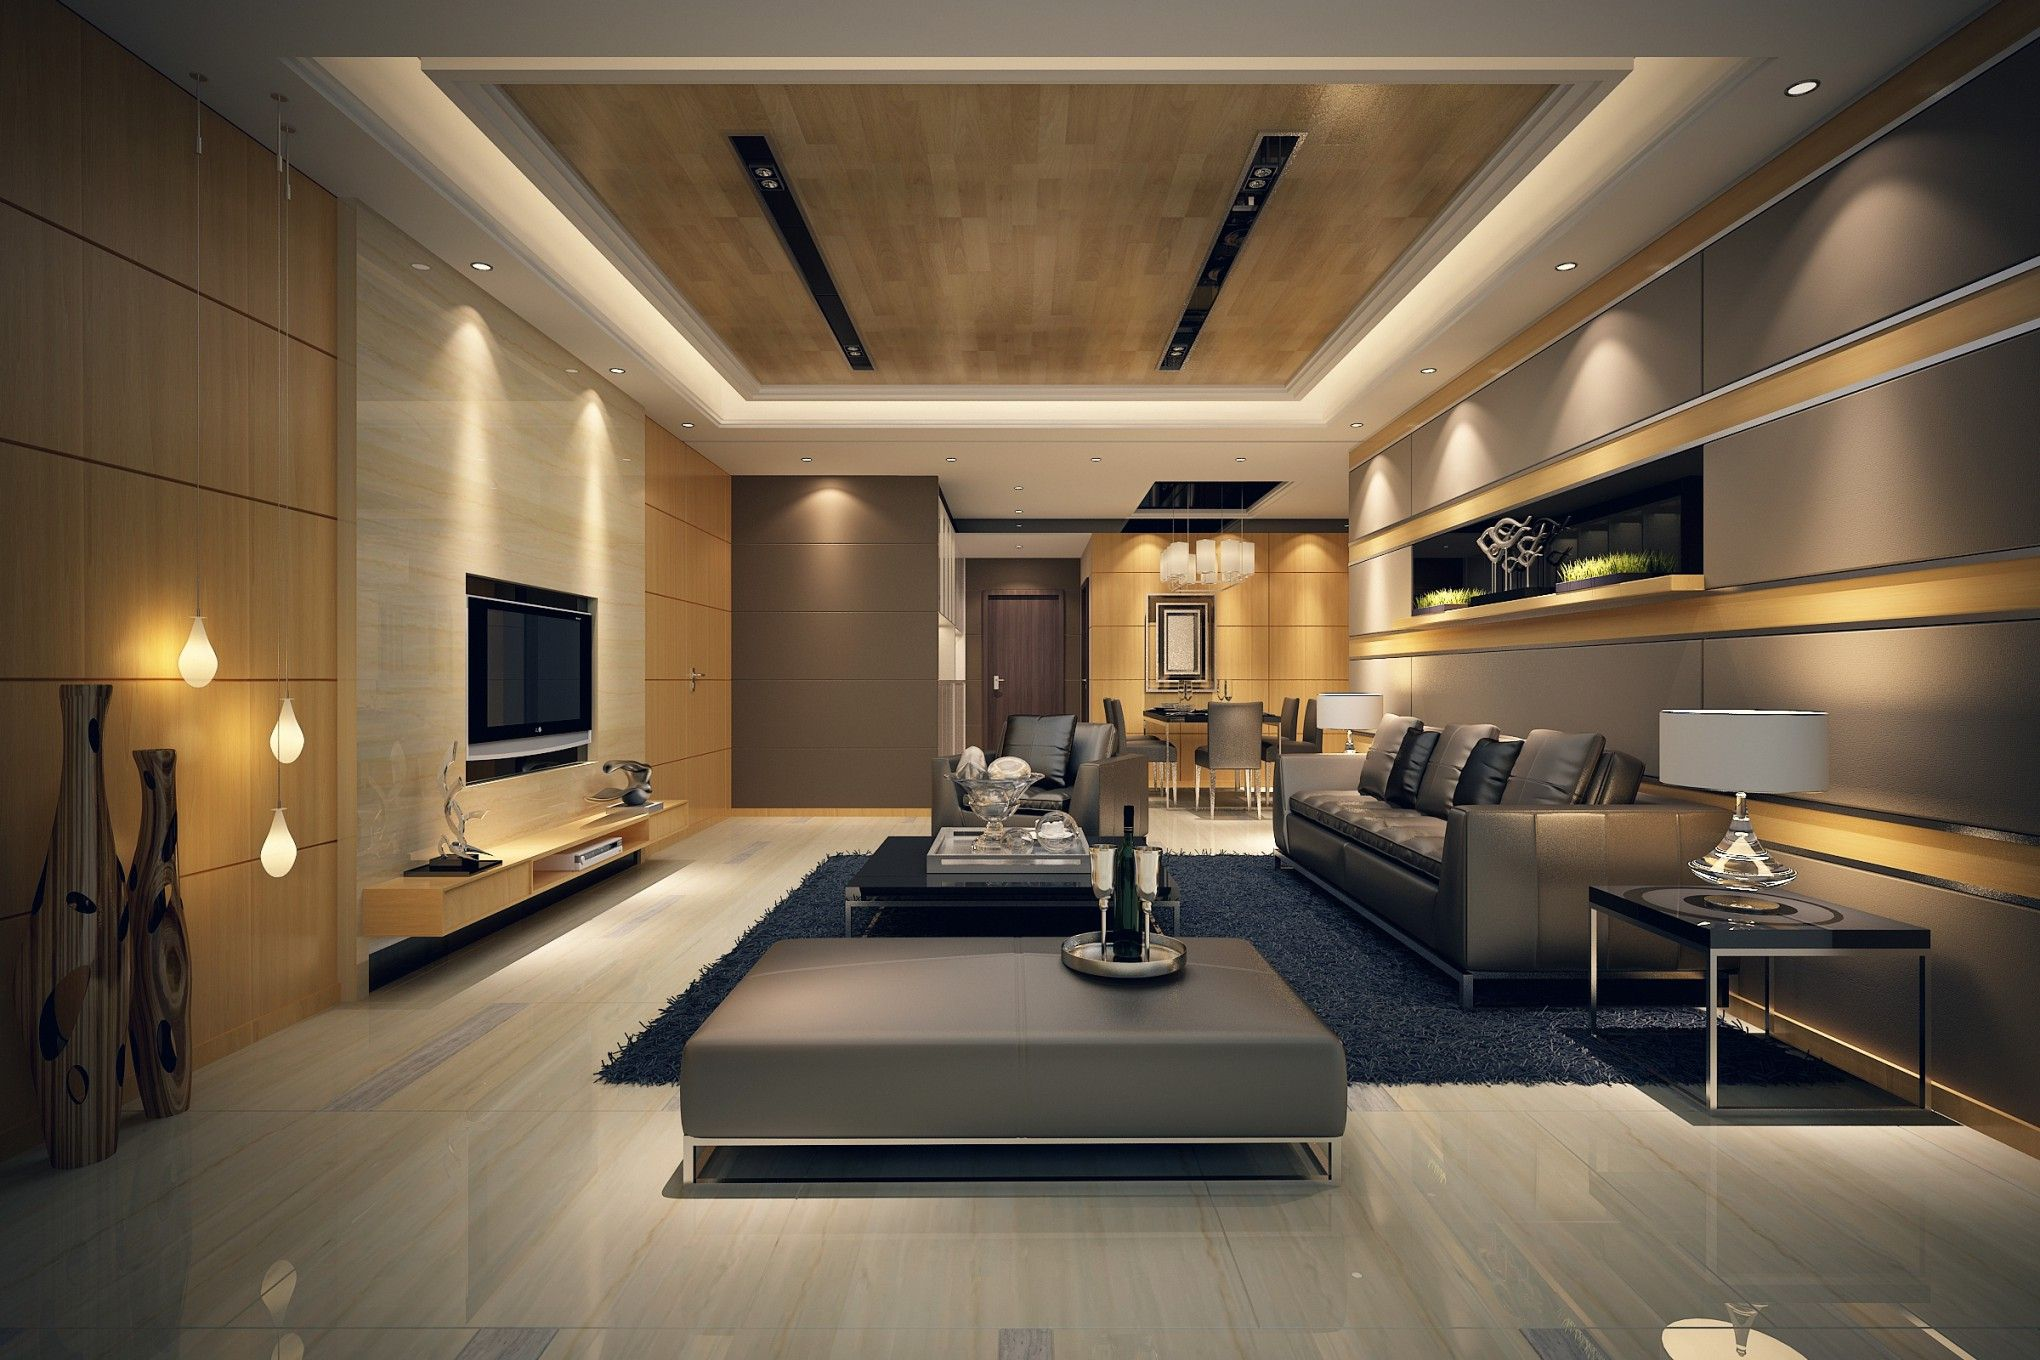 Luxury Ultra Modern Interior Design Idea In Private House 2040x1360 Modern Living Room Interior Living Room Design Modern Apartment Interior Design